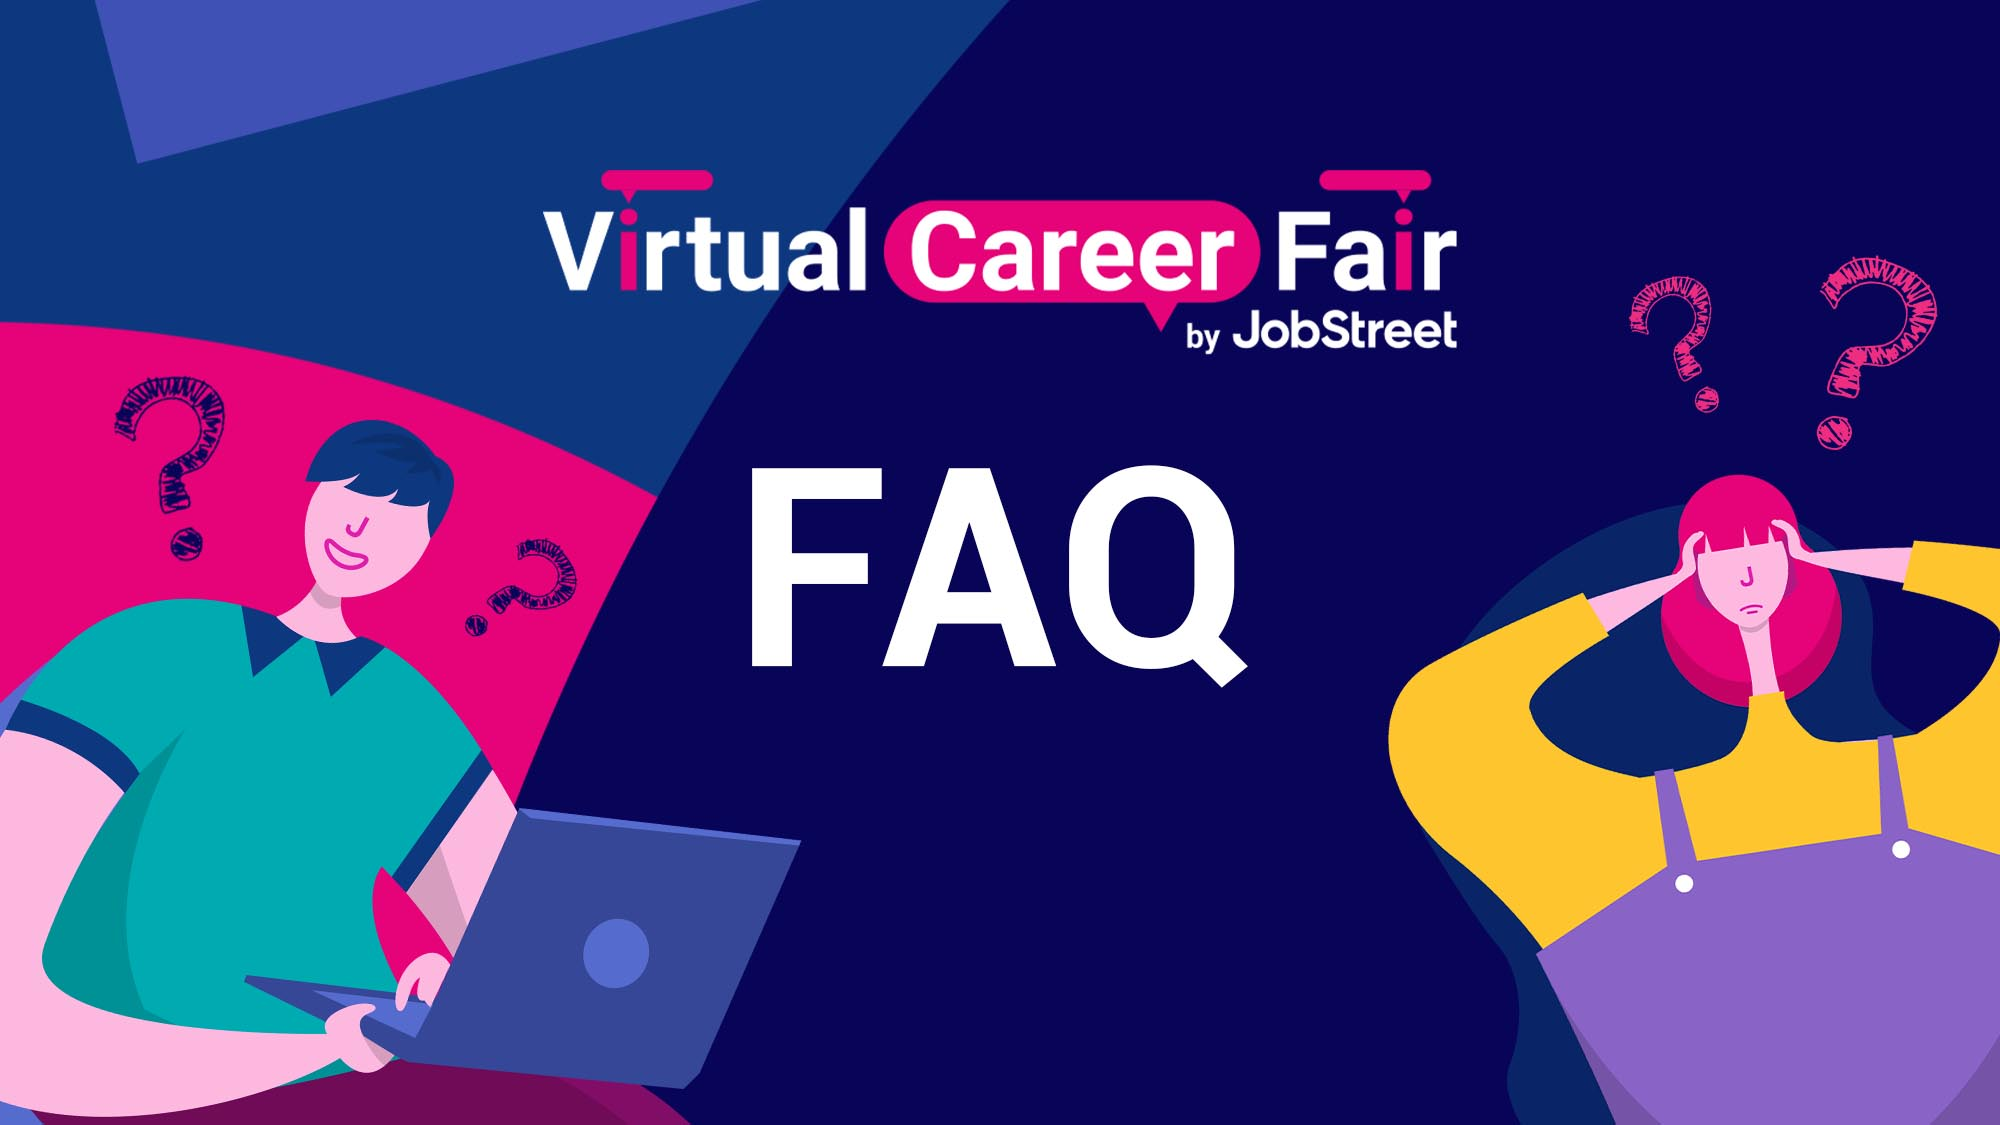 Frequently Asked Questions about the Virtual Career Fair